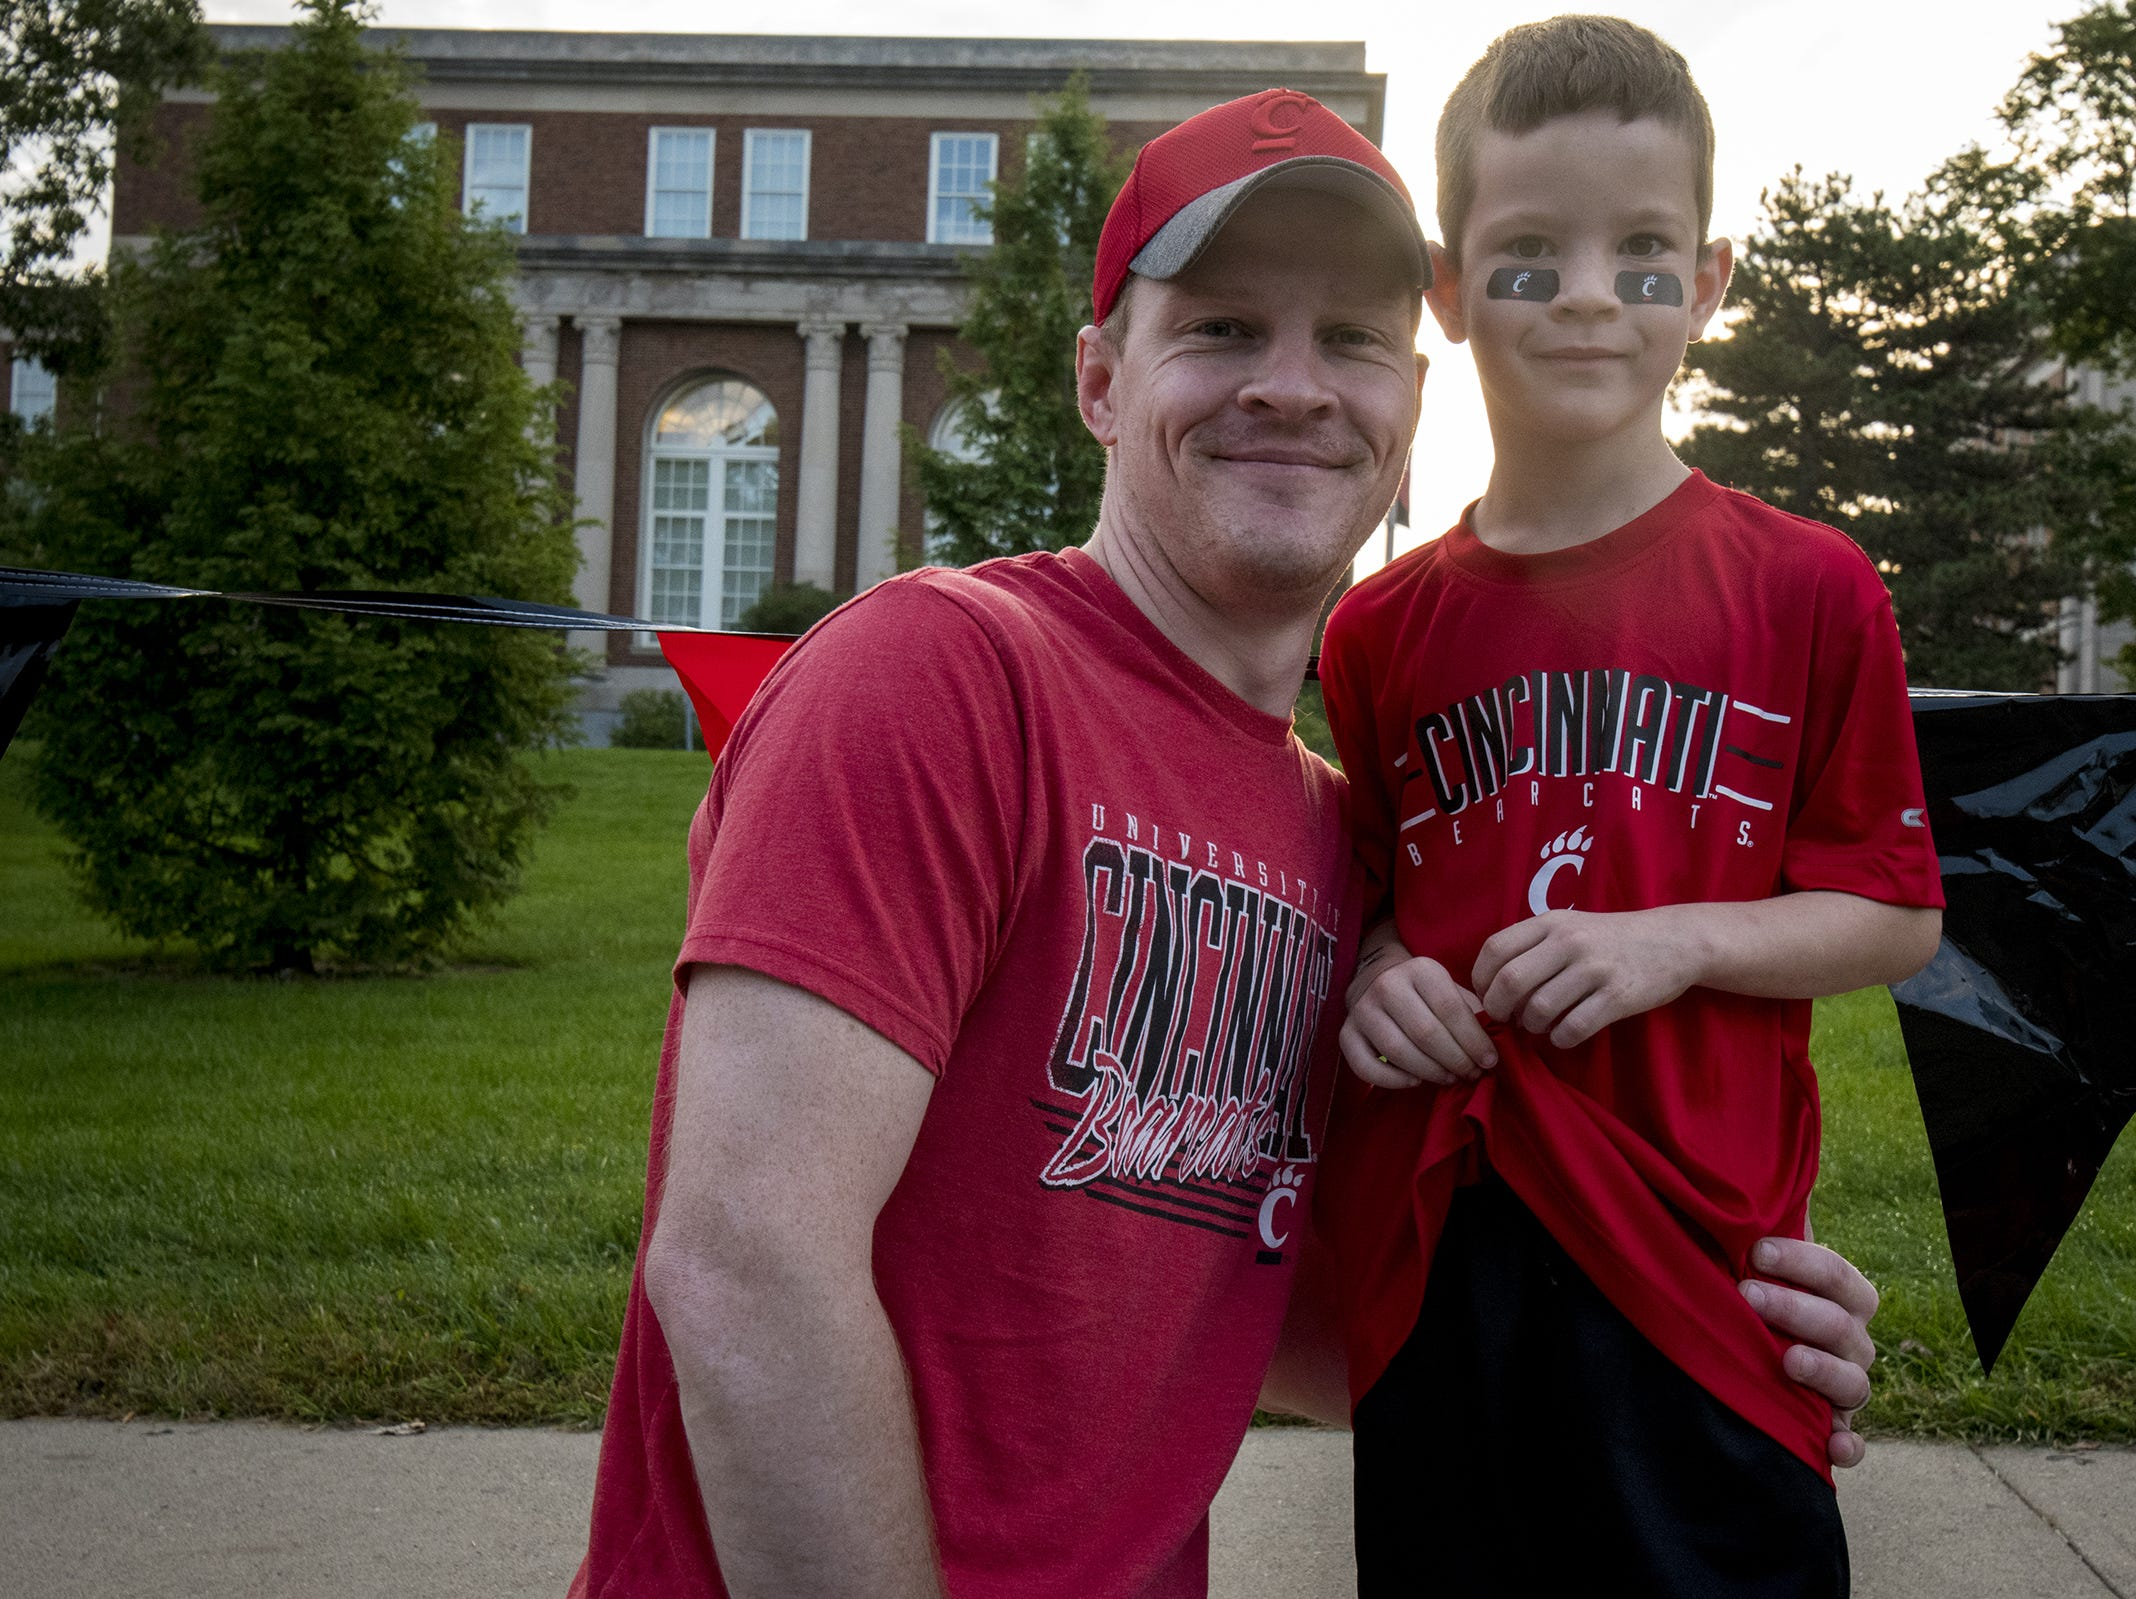 Craig and Everette Bonifas watch the annual University of Cincinnati Homecoming parade.